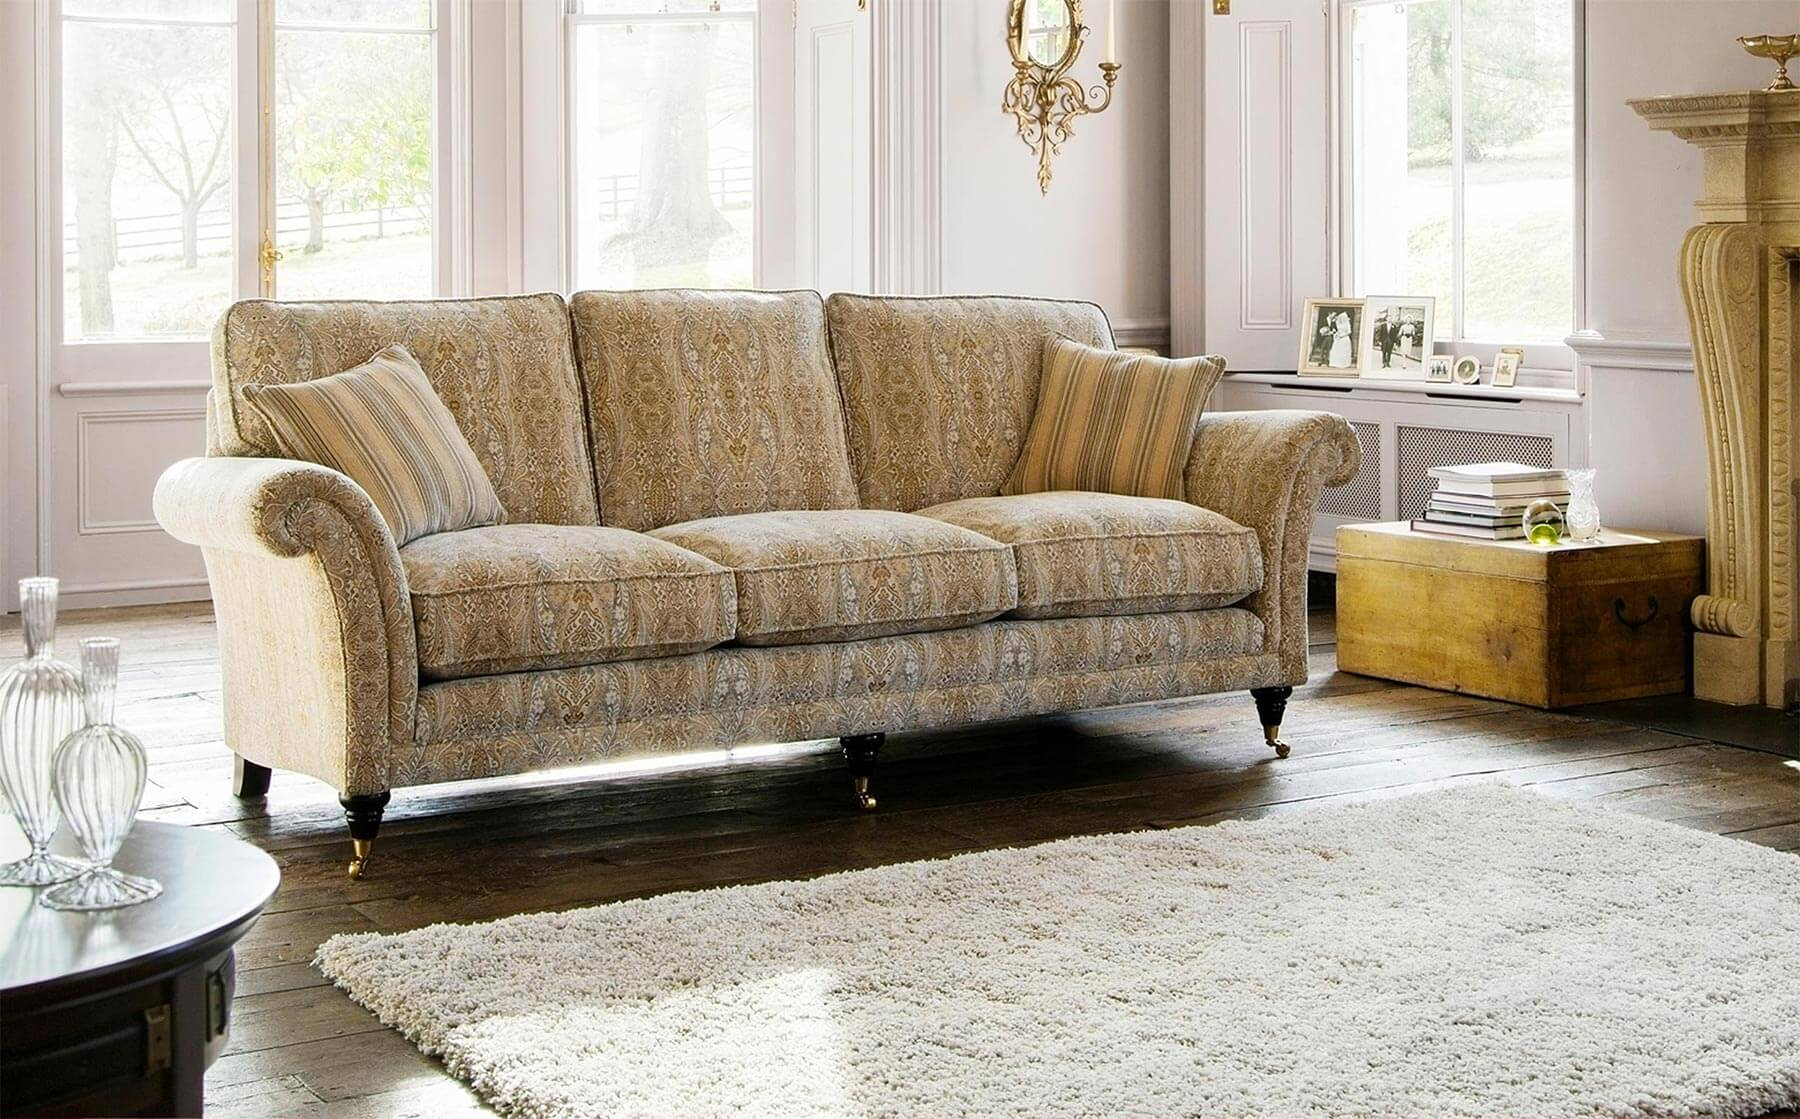 View the Parker Knoll furniture collection at Material Things